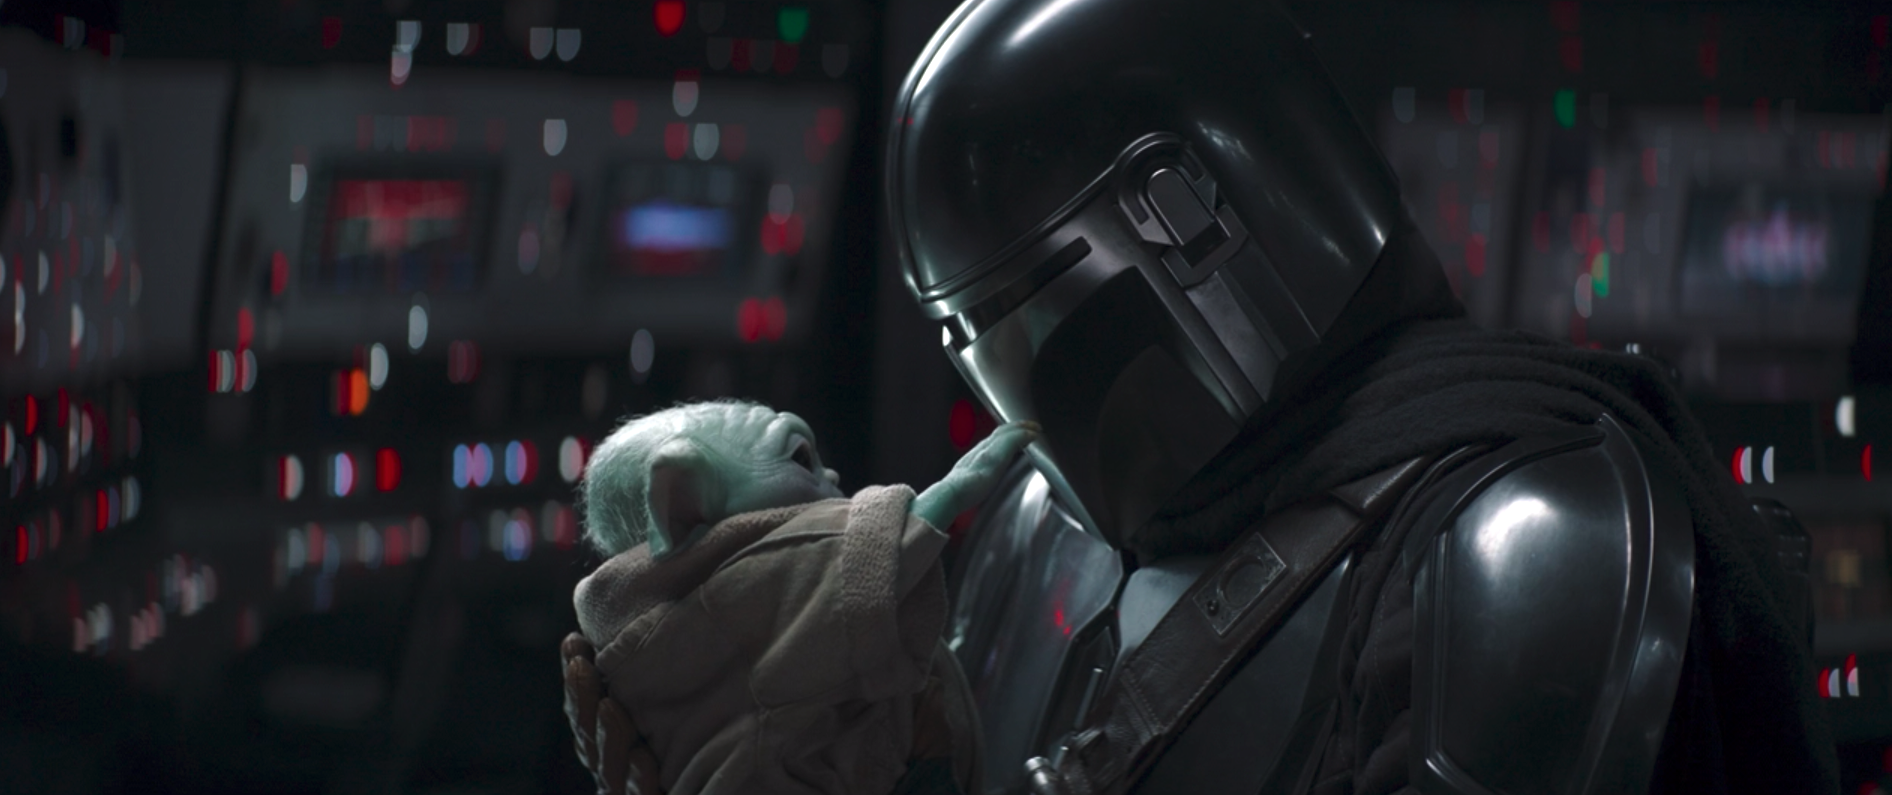 The Mandalorian and Baby Yoda have a moment in The Mandalorian season 2 finale